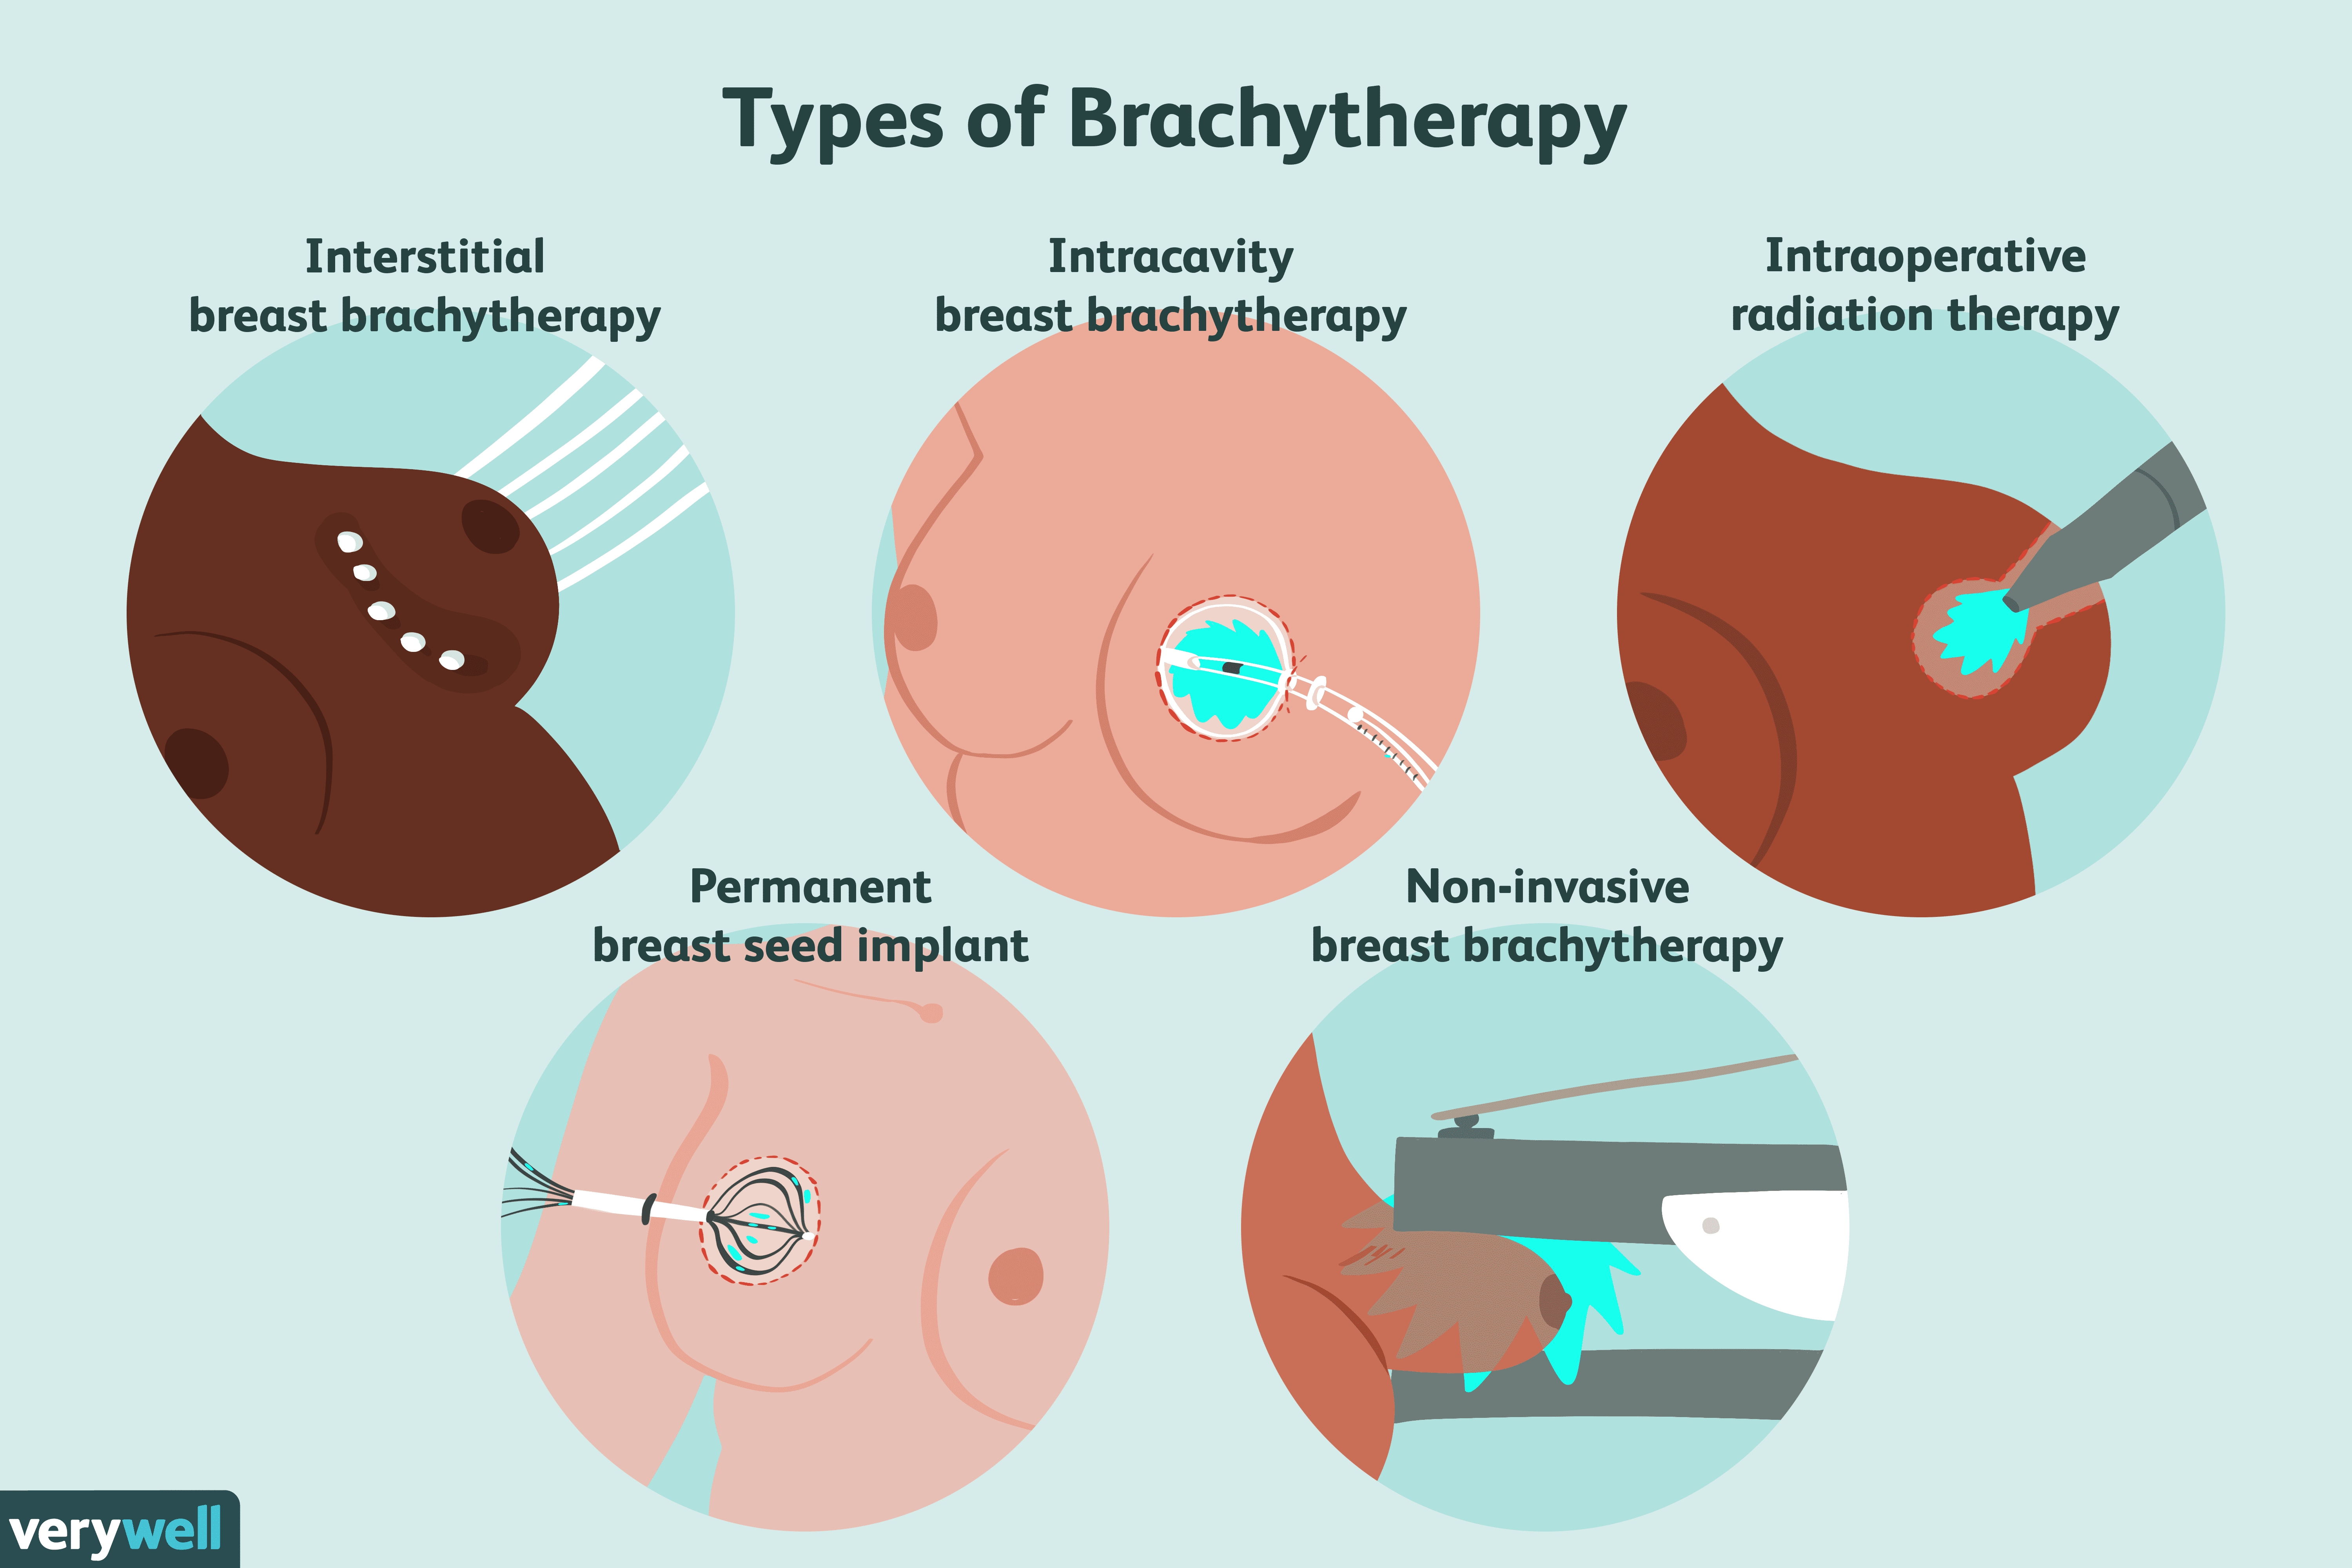 endometrial cancer brachytherapy side effects